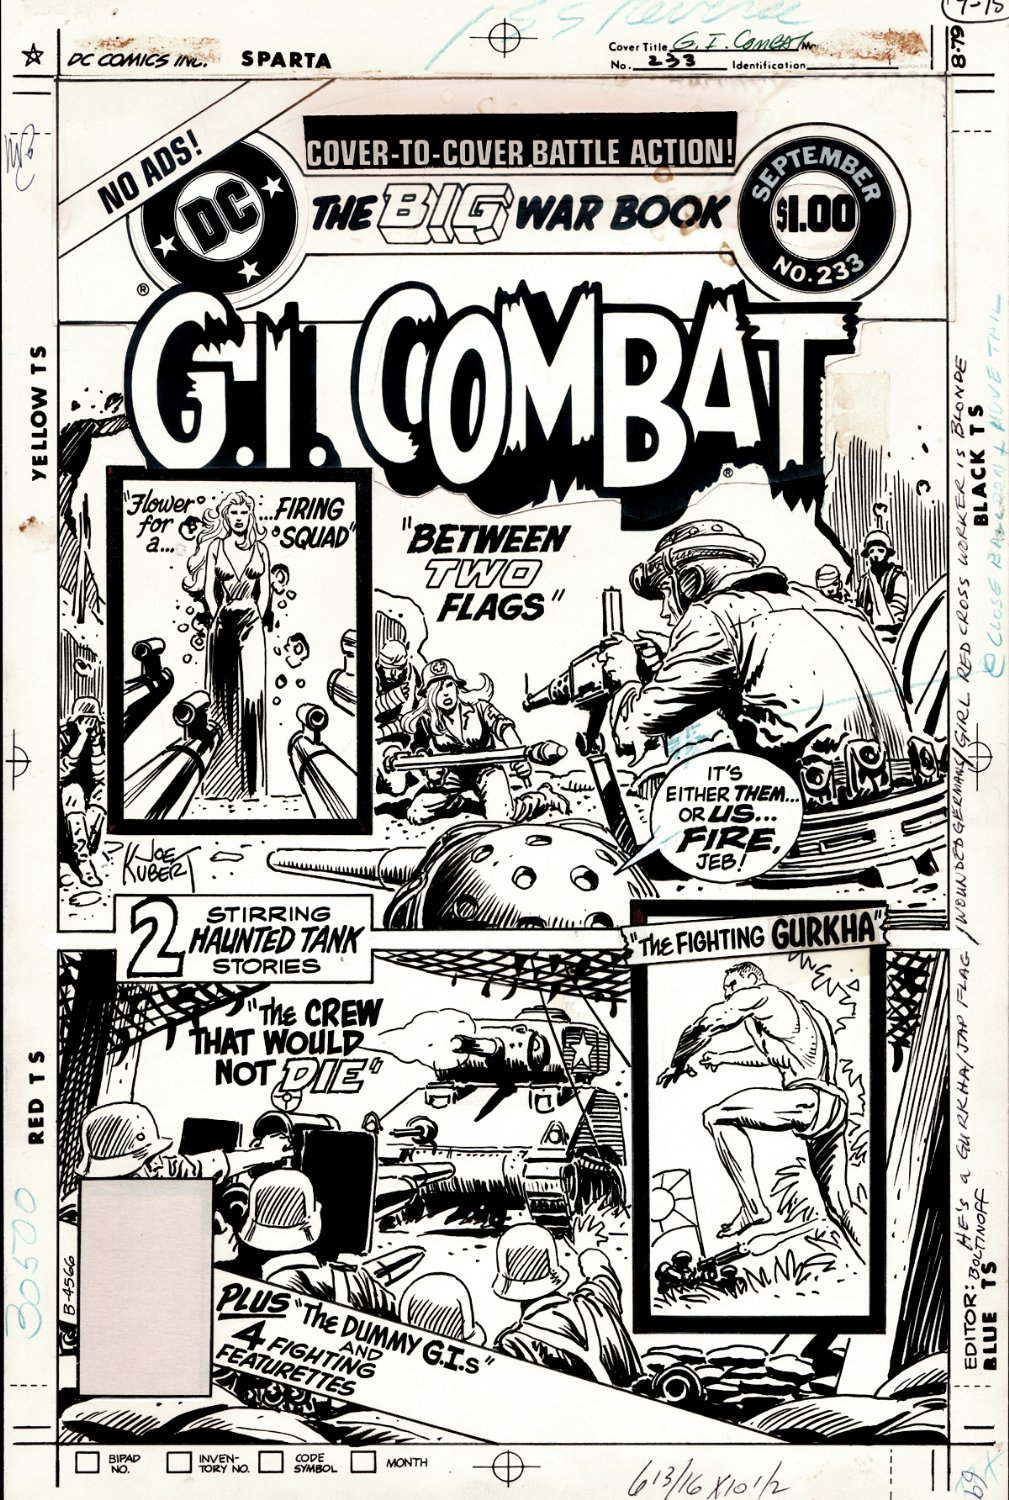 G.I. Combat #233 Cover (JOE KUBERT MAGIC!) 1981